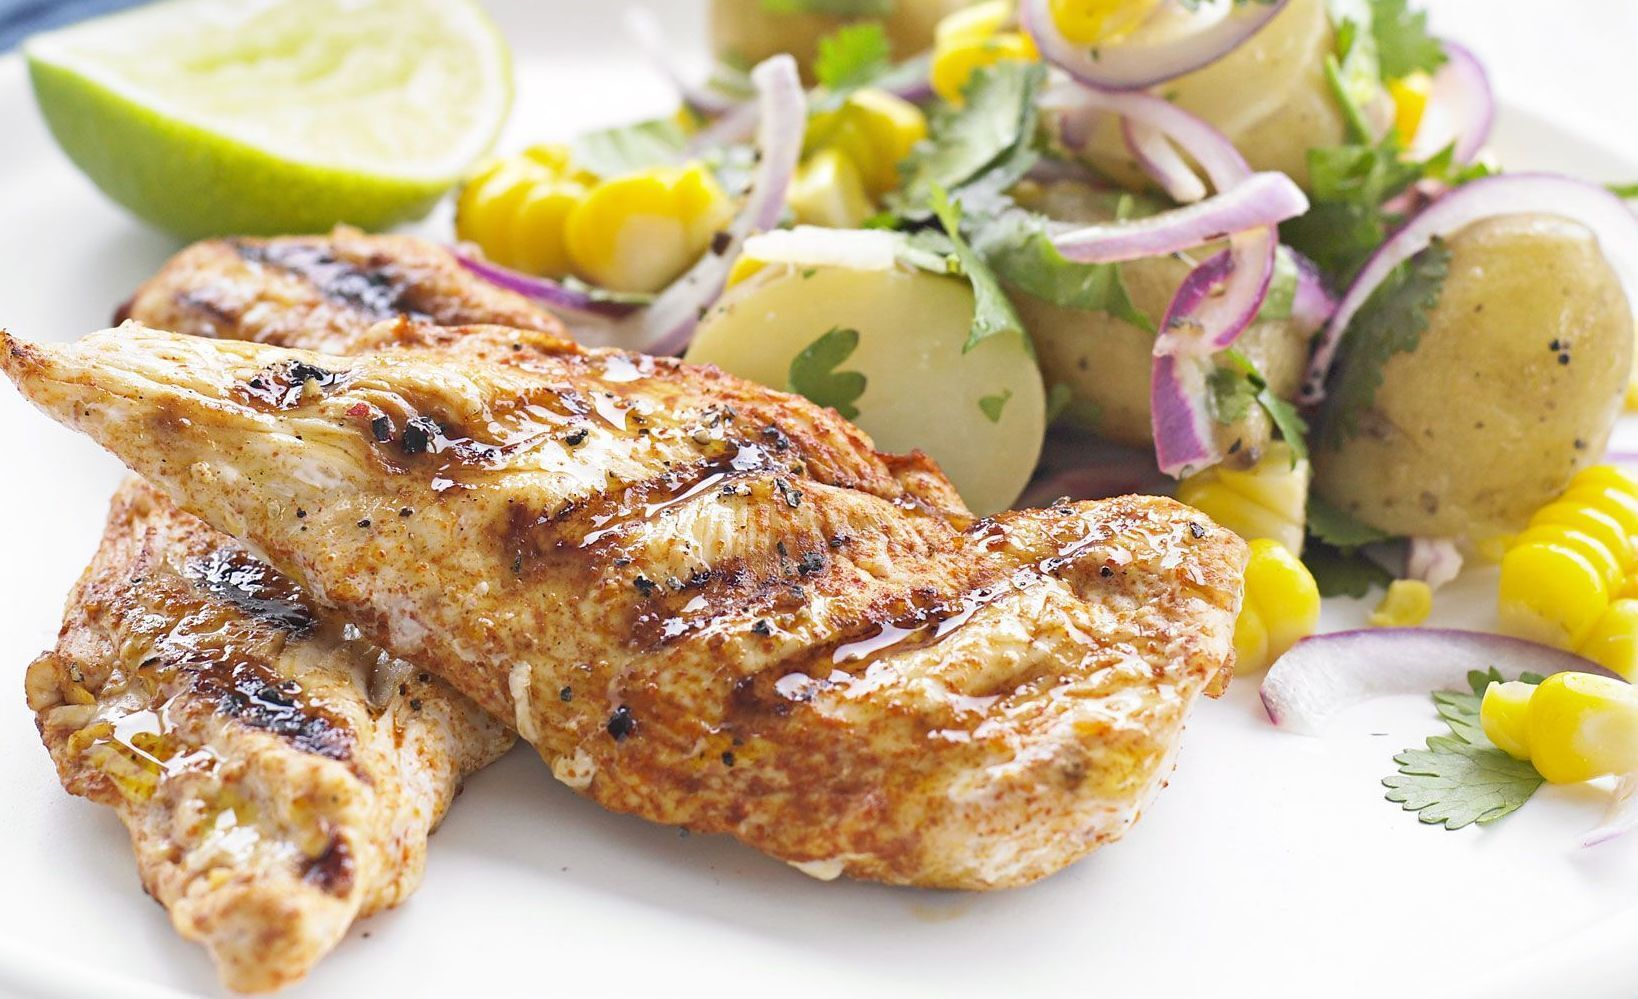 Smoked Chicken with Corn / Potato Salad Recipe